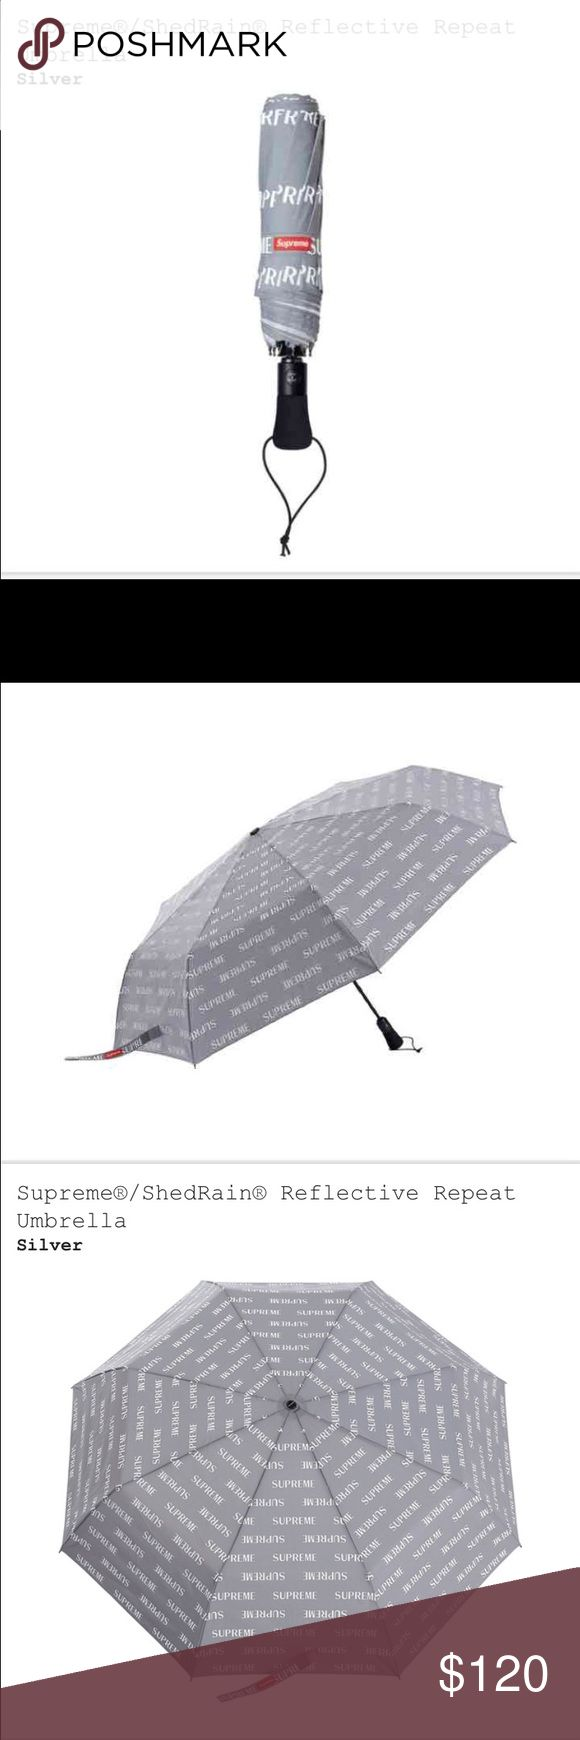 Supreme Reflective Umbrella Sold out online at Supreme and season has ended . Purchased at NYC Supreme store . New with tag and packaging . Supreme Accessories Umbrellas